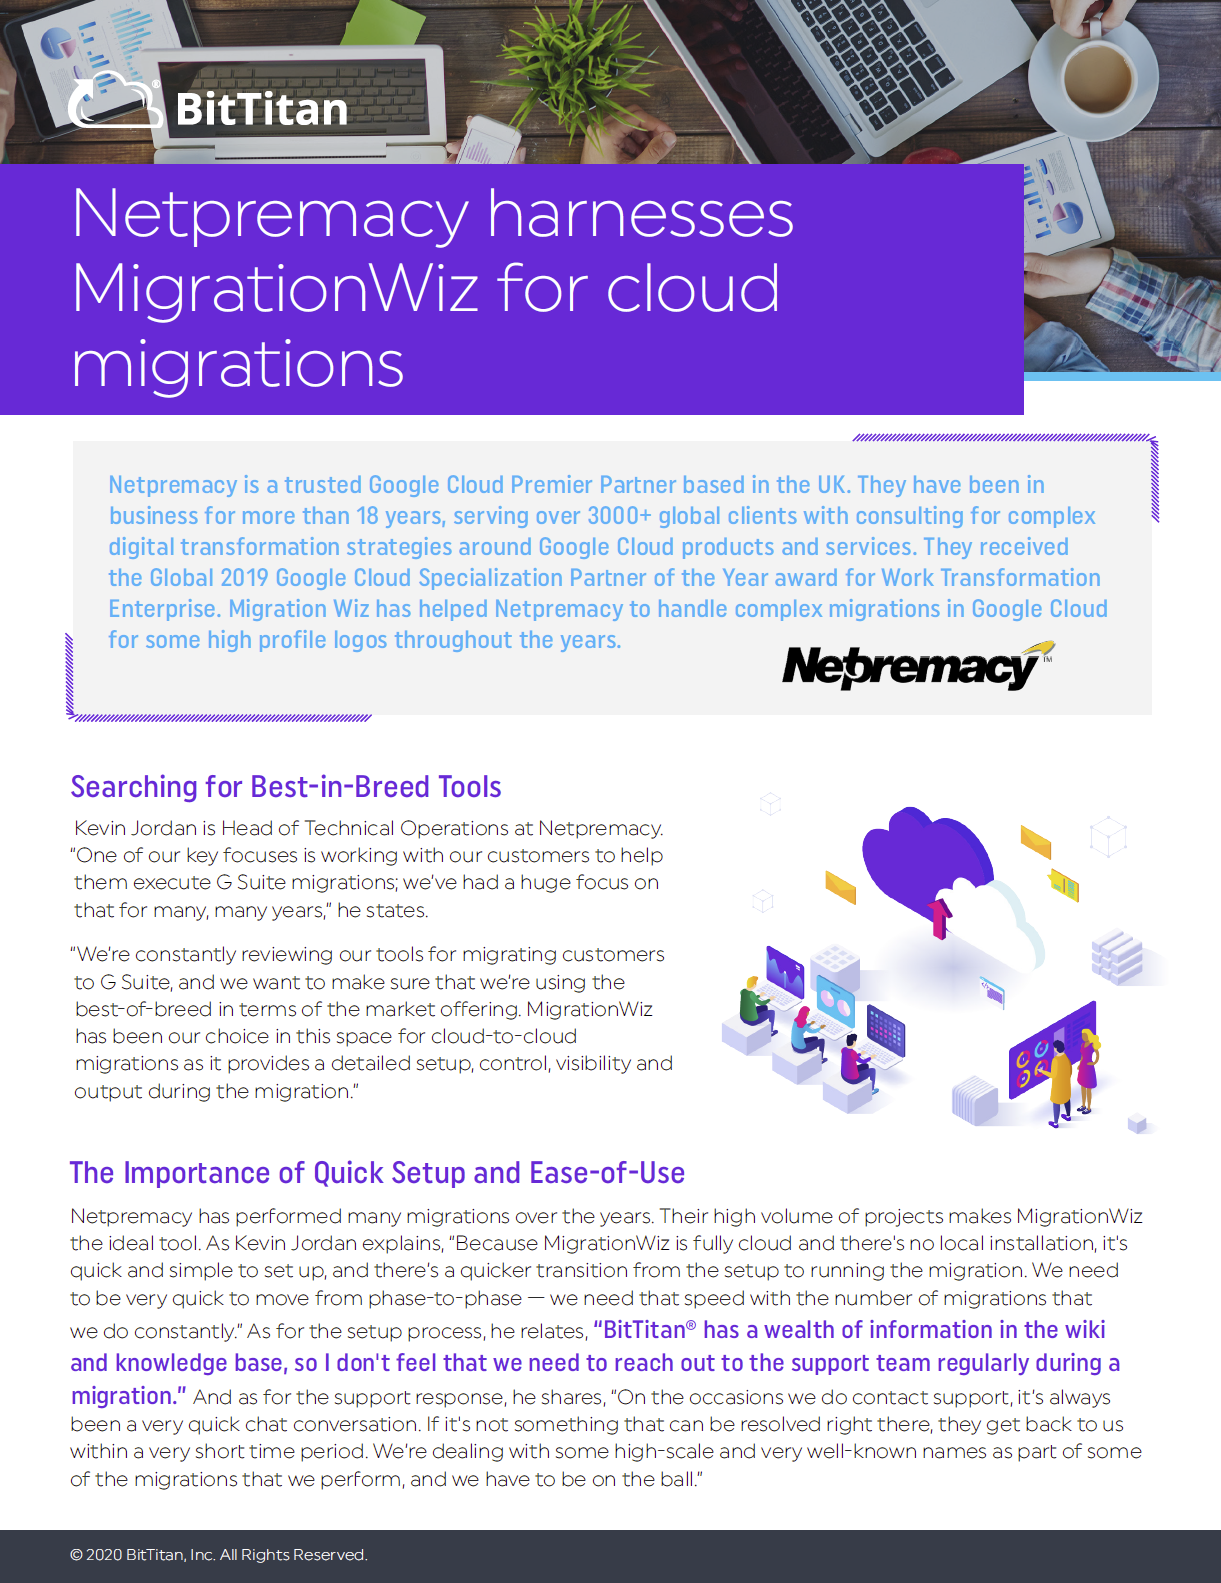 Netpremacy Harnesses MigrationWiz for Cloud Migrations